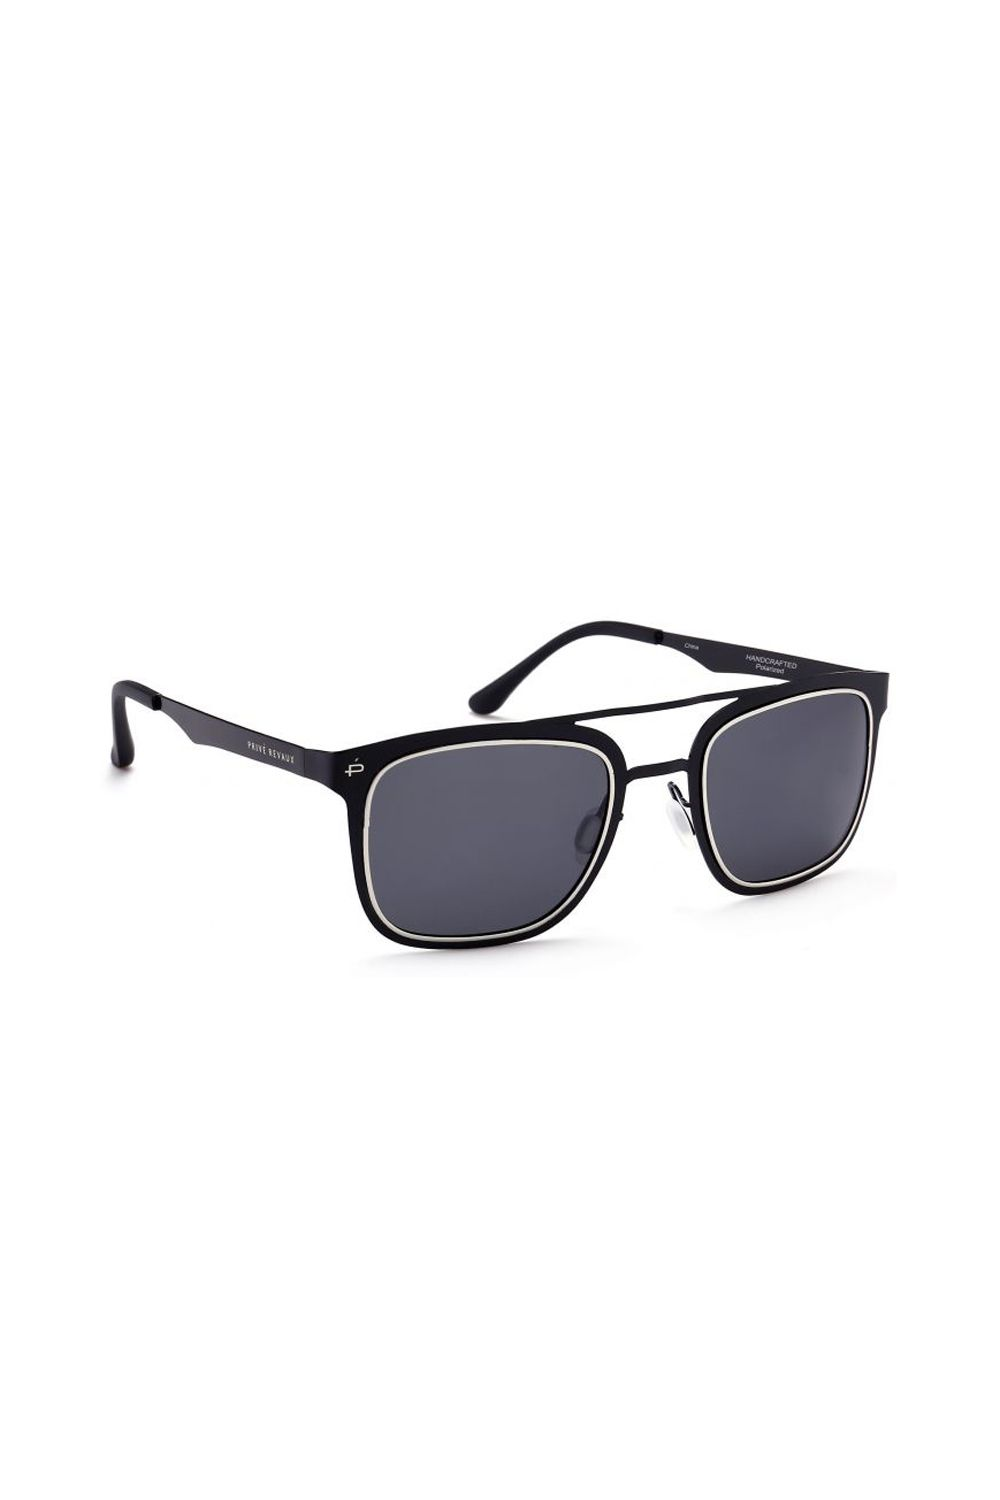 78ae810fd7 32 Best Sunglasses for Women in 2018 - Affordable Sunglasses for Women